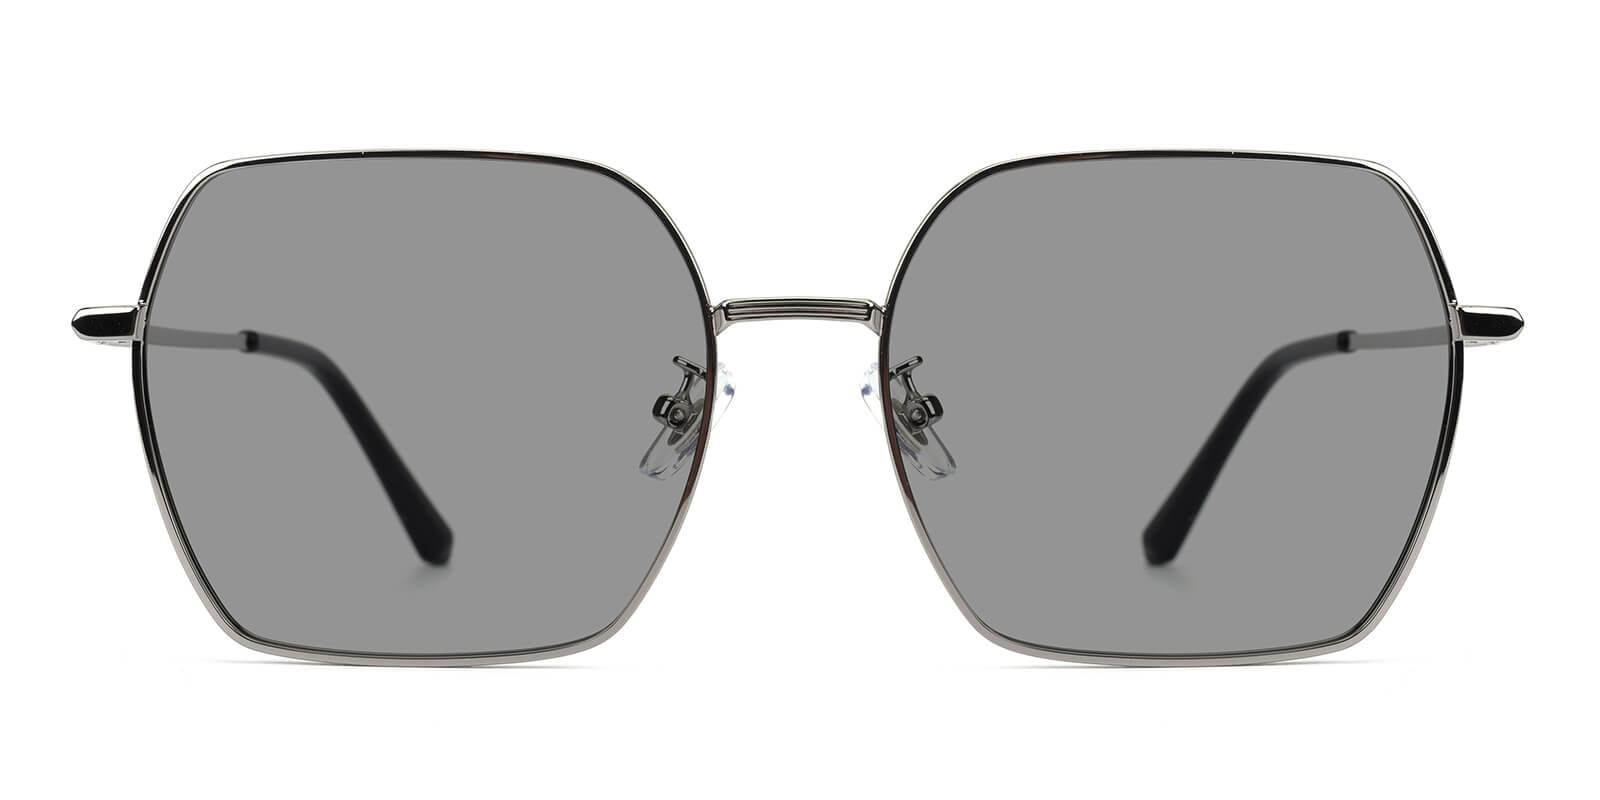 Quinny-Silver-Square-Metal-Sunglasses-additional2